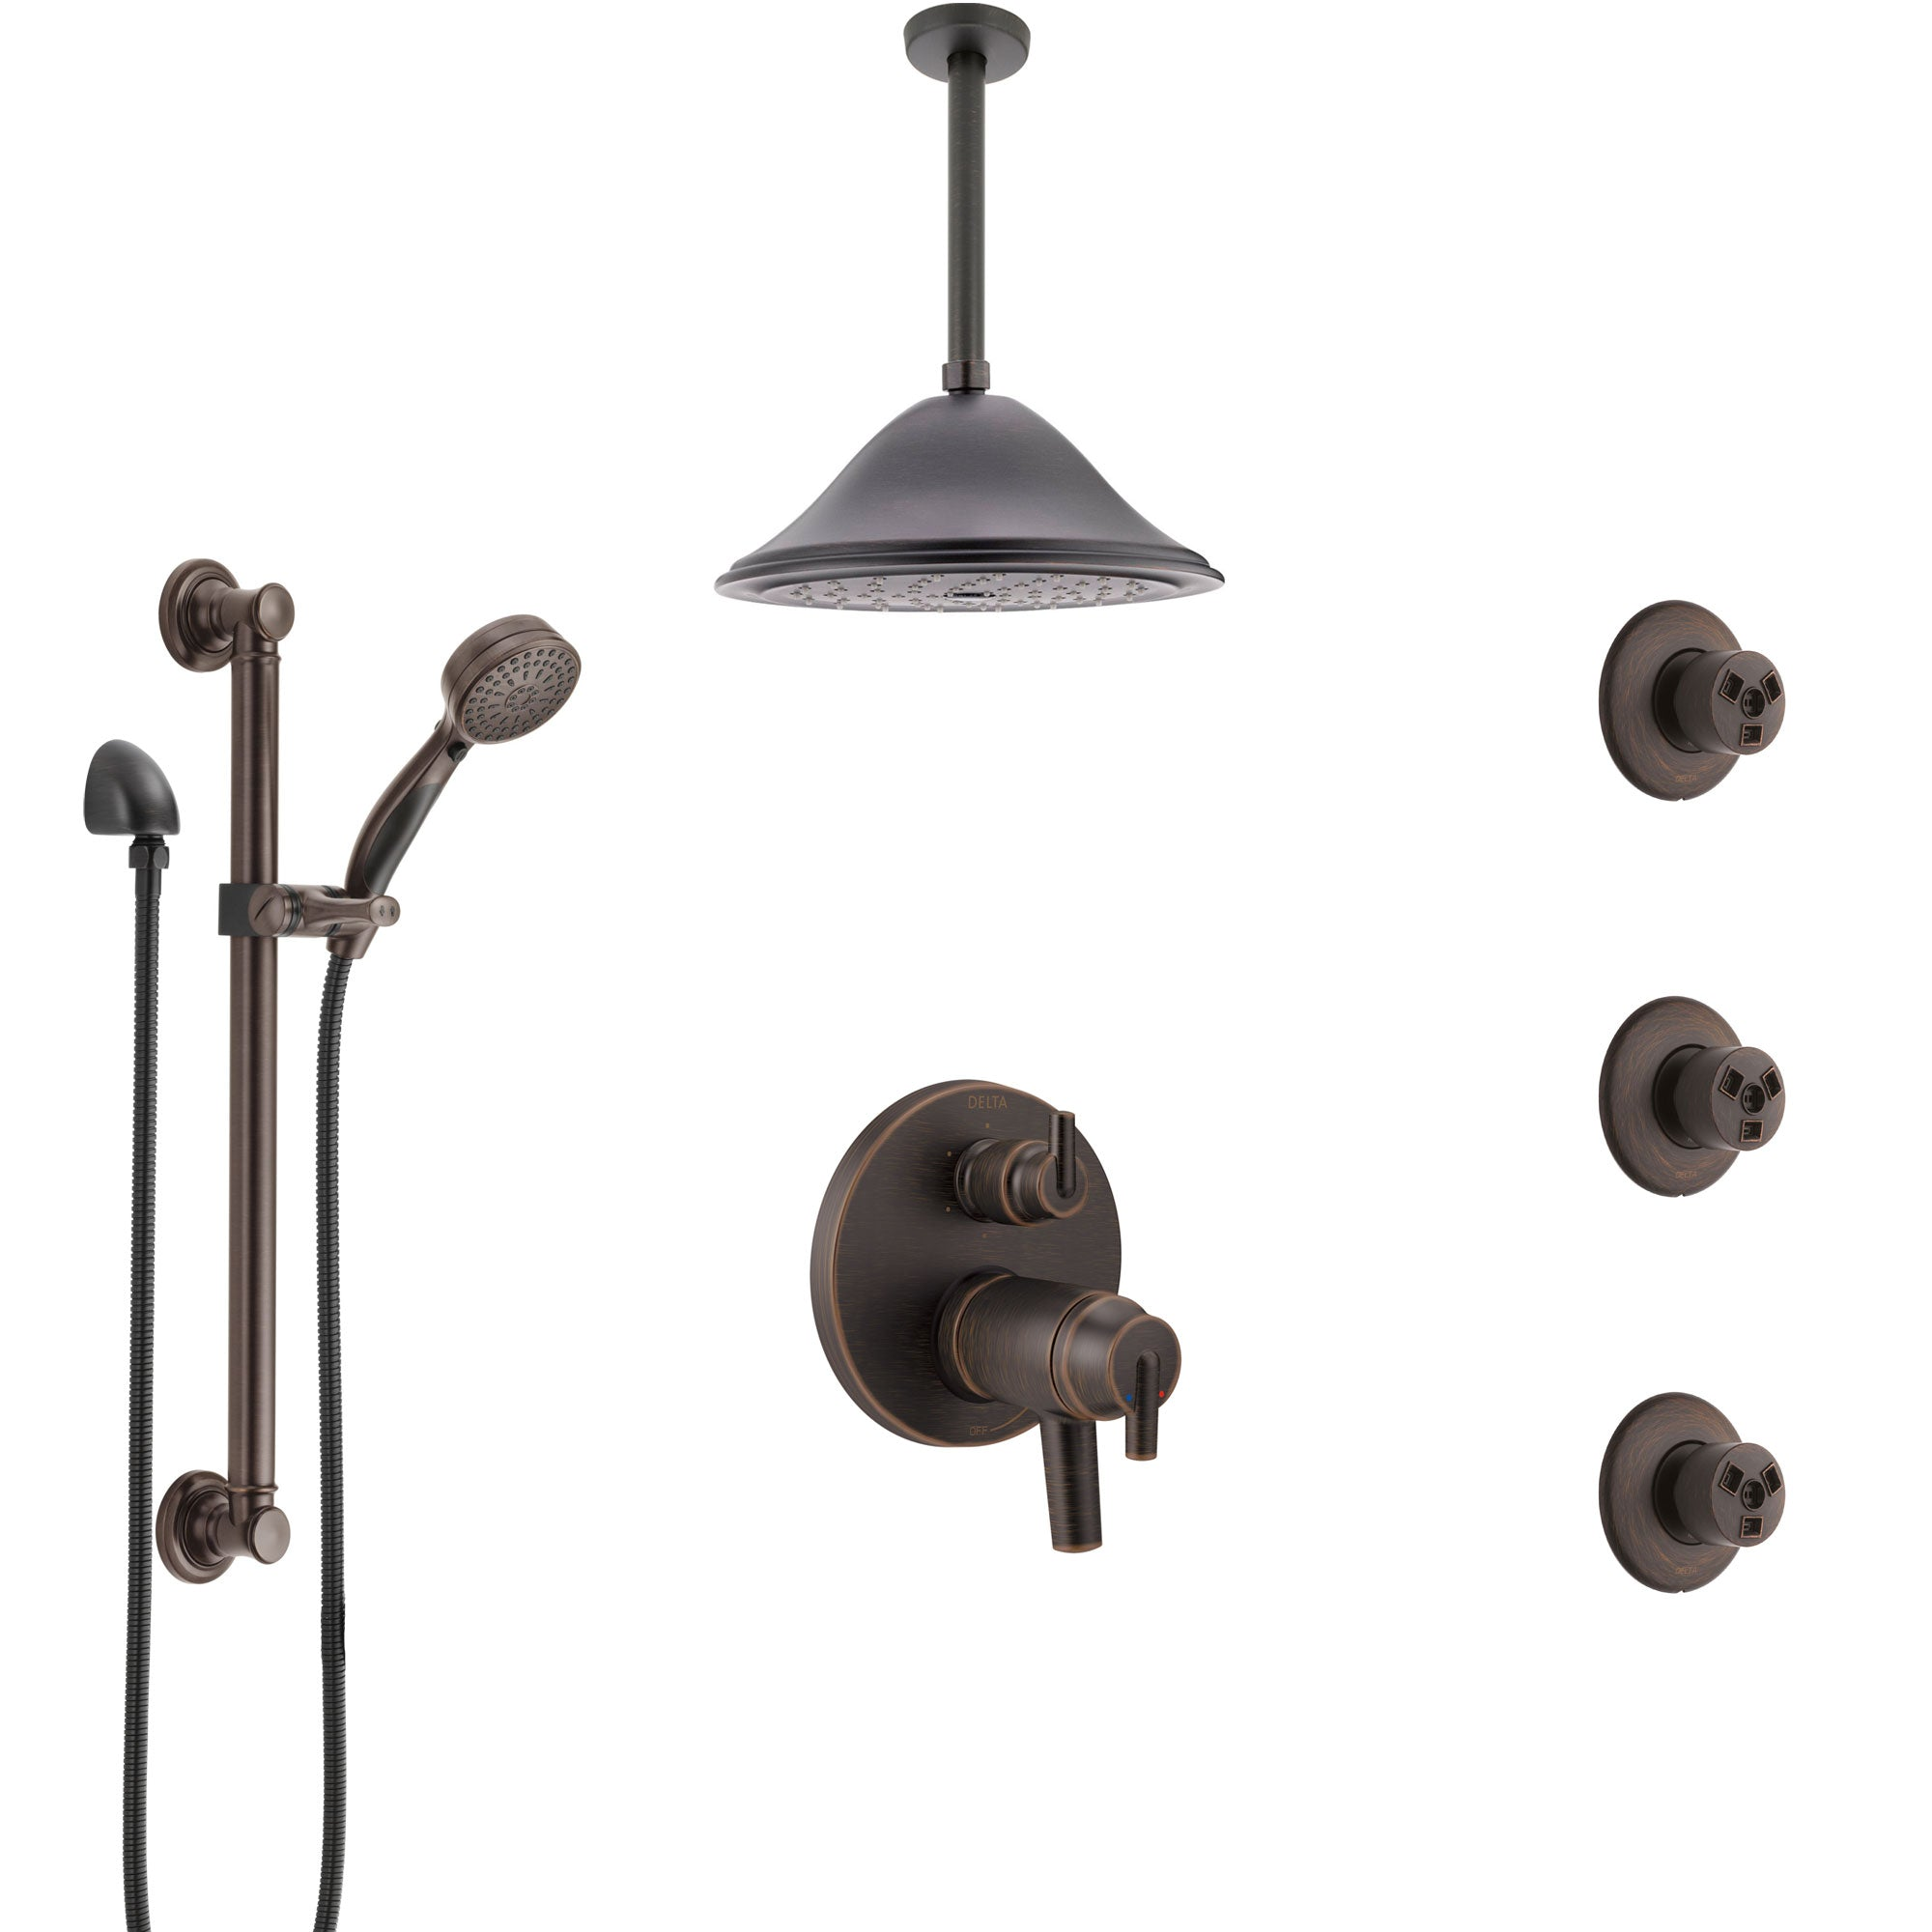 Delta Trinsic Venetian Bronze Dual Thermostatic Control Shower System, Ceiling Showerhead, 3 Body Jets, Grab Bar Hand Spray SS27T959RB10